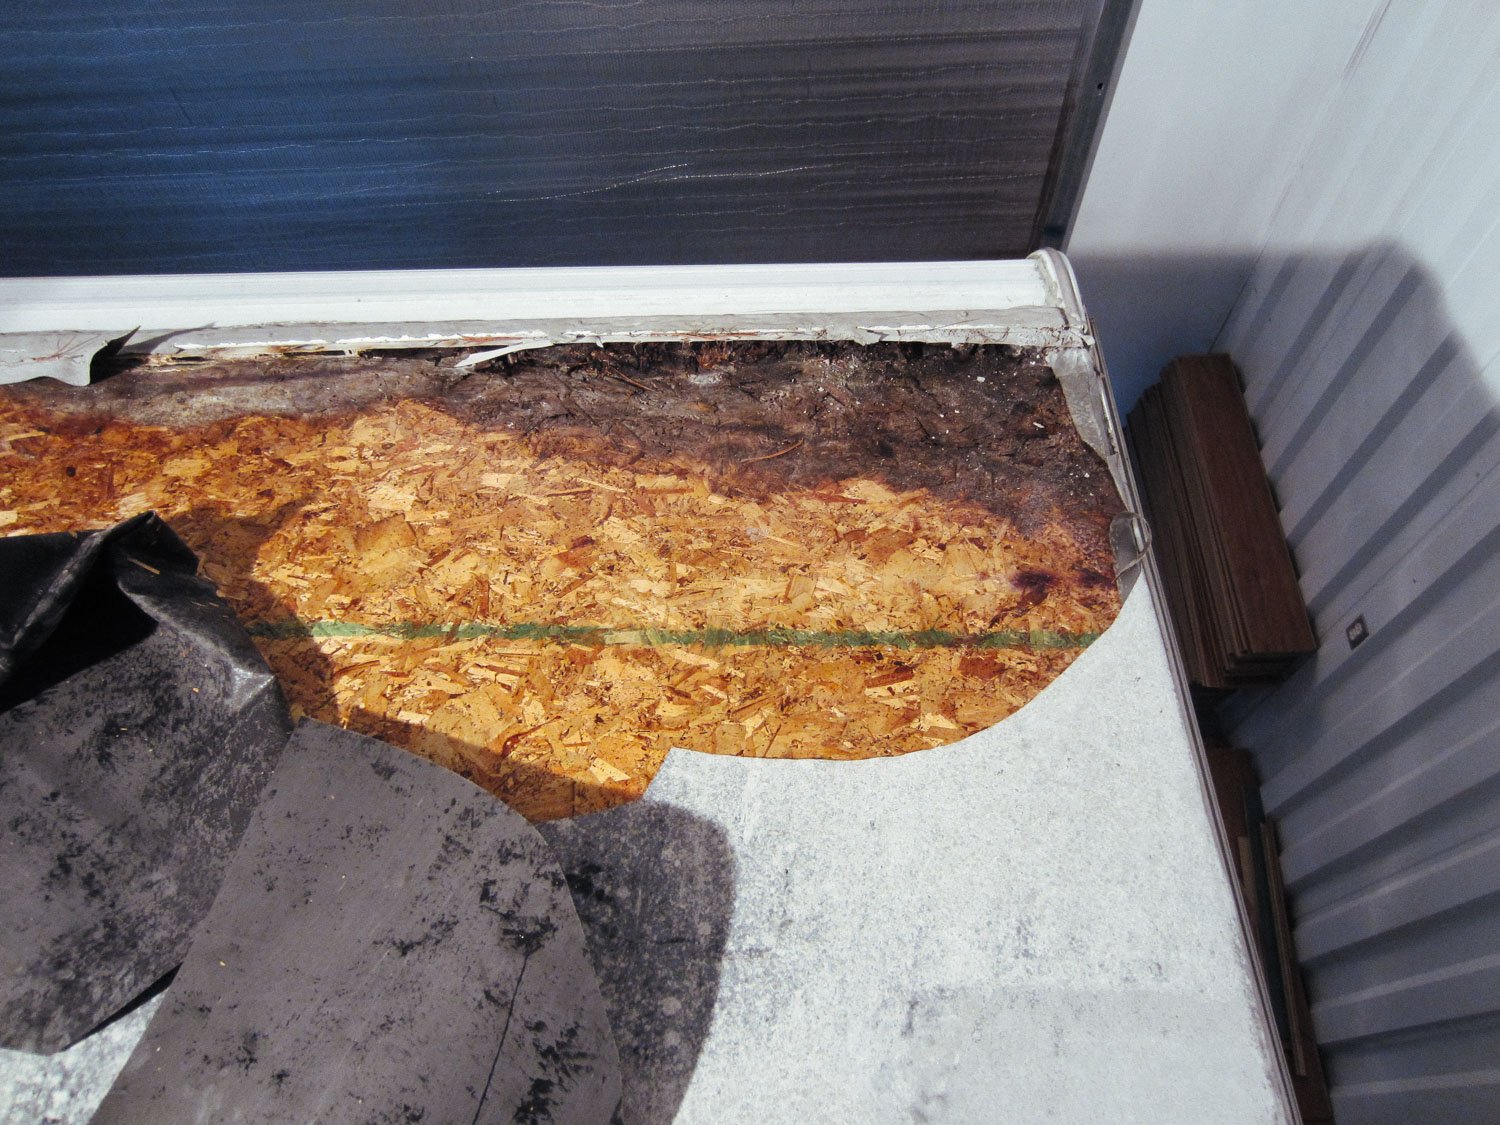 We found out exactly how badly the roof decking was damaged by water.